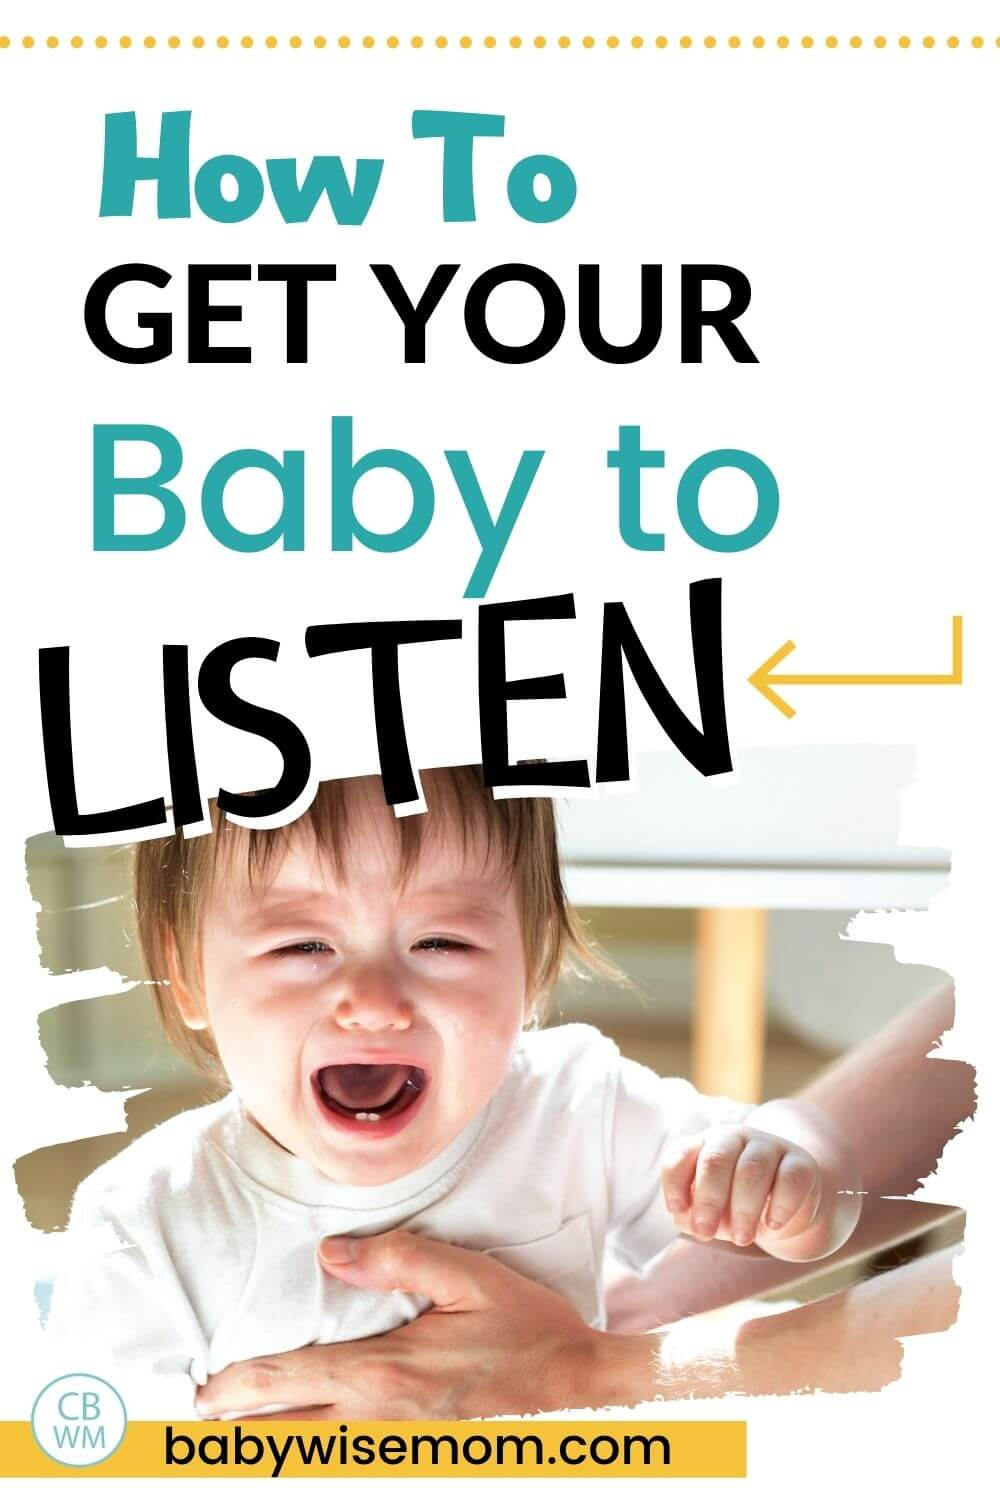 How to get baby to listen